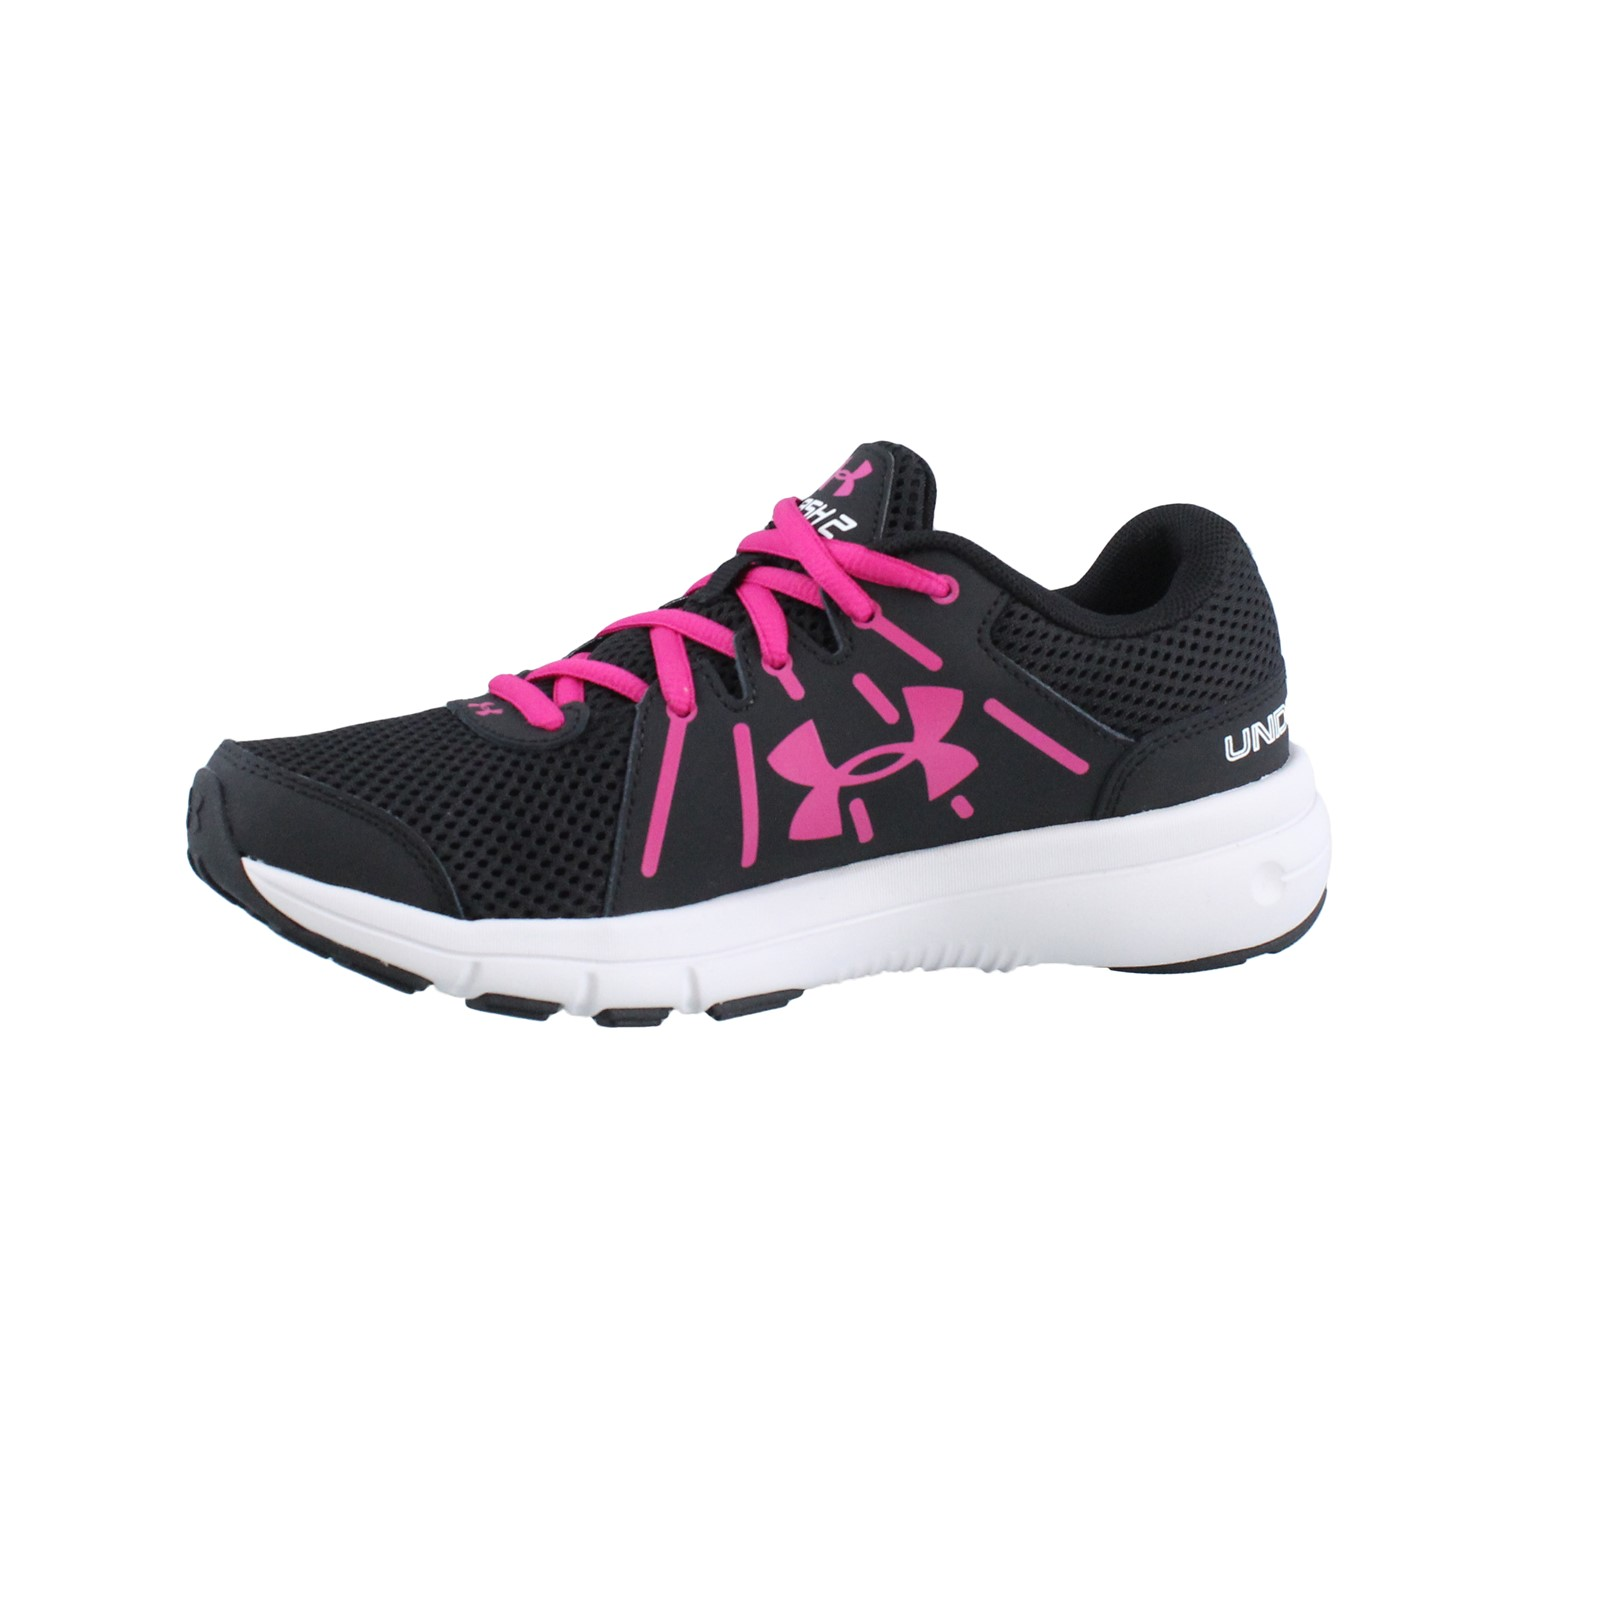 info for 4a5d0 d3024 Women's Under Armour, Dash Run RN 2 Running Sneakers